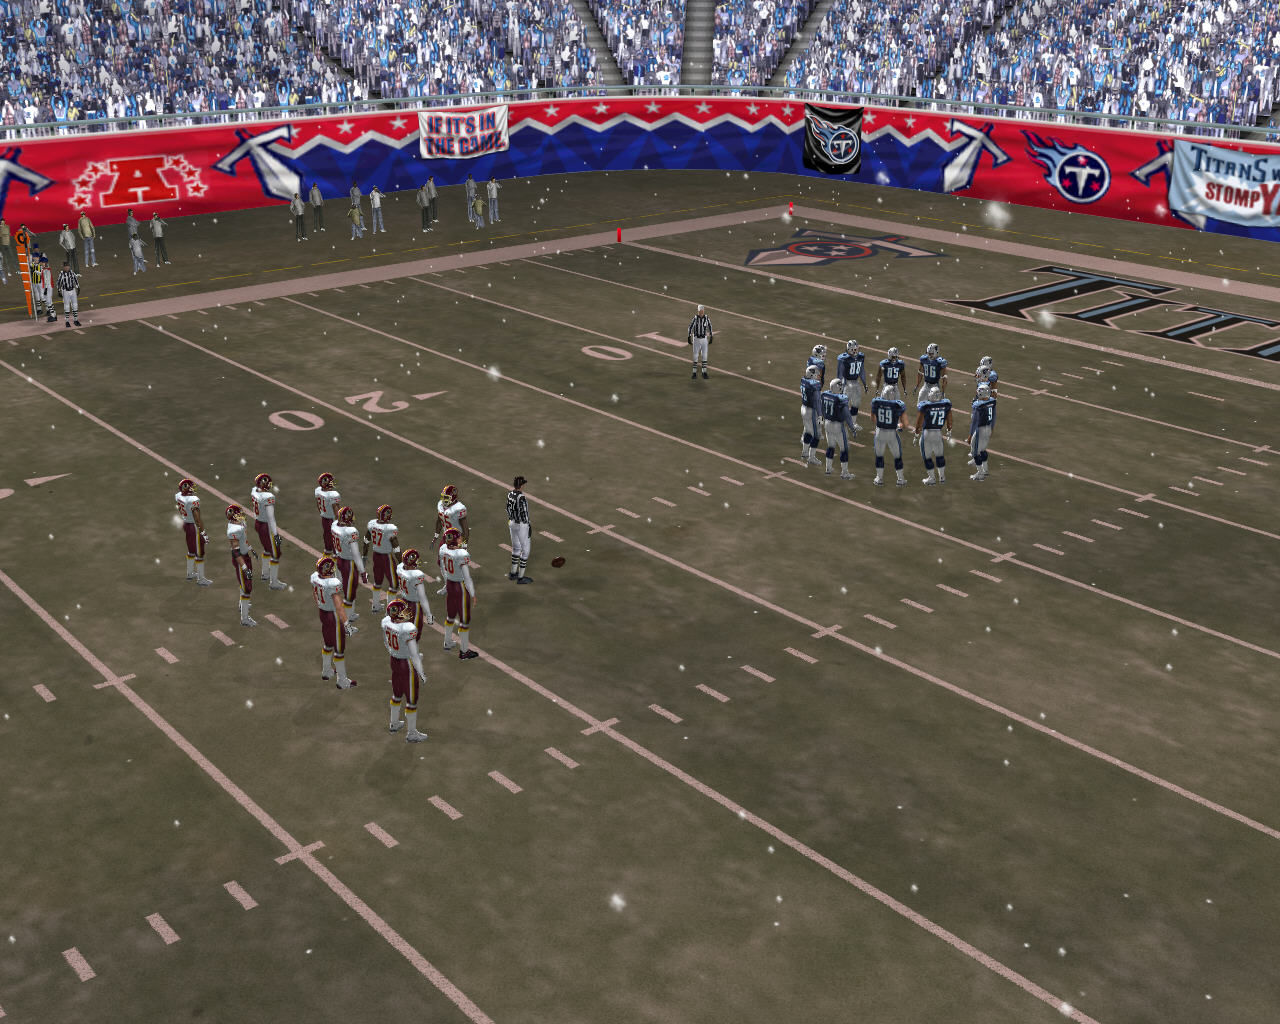 Madden NFL 2005 Windows Two teams on the field